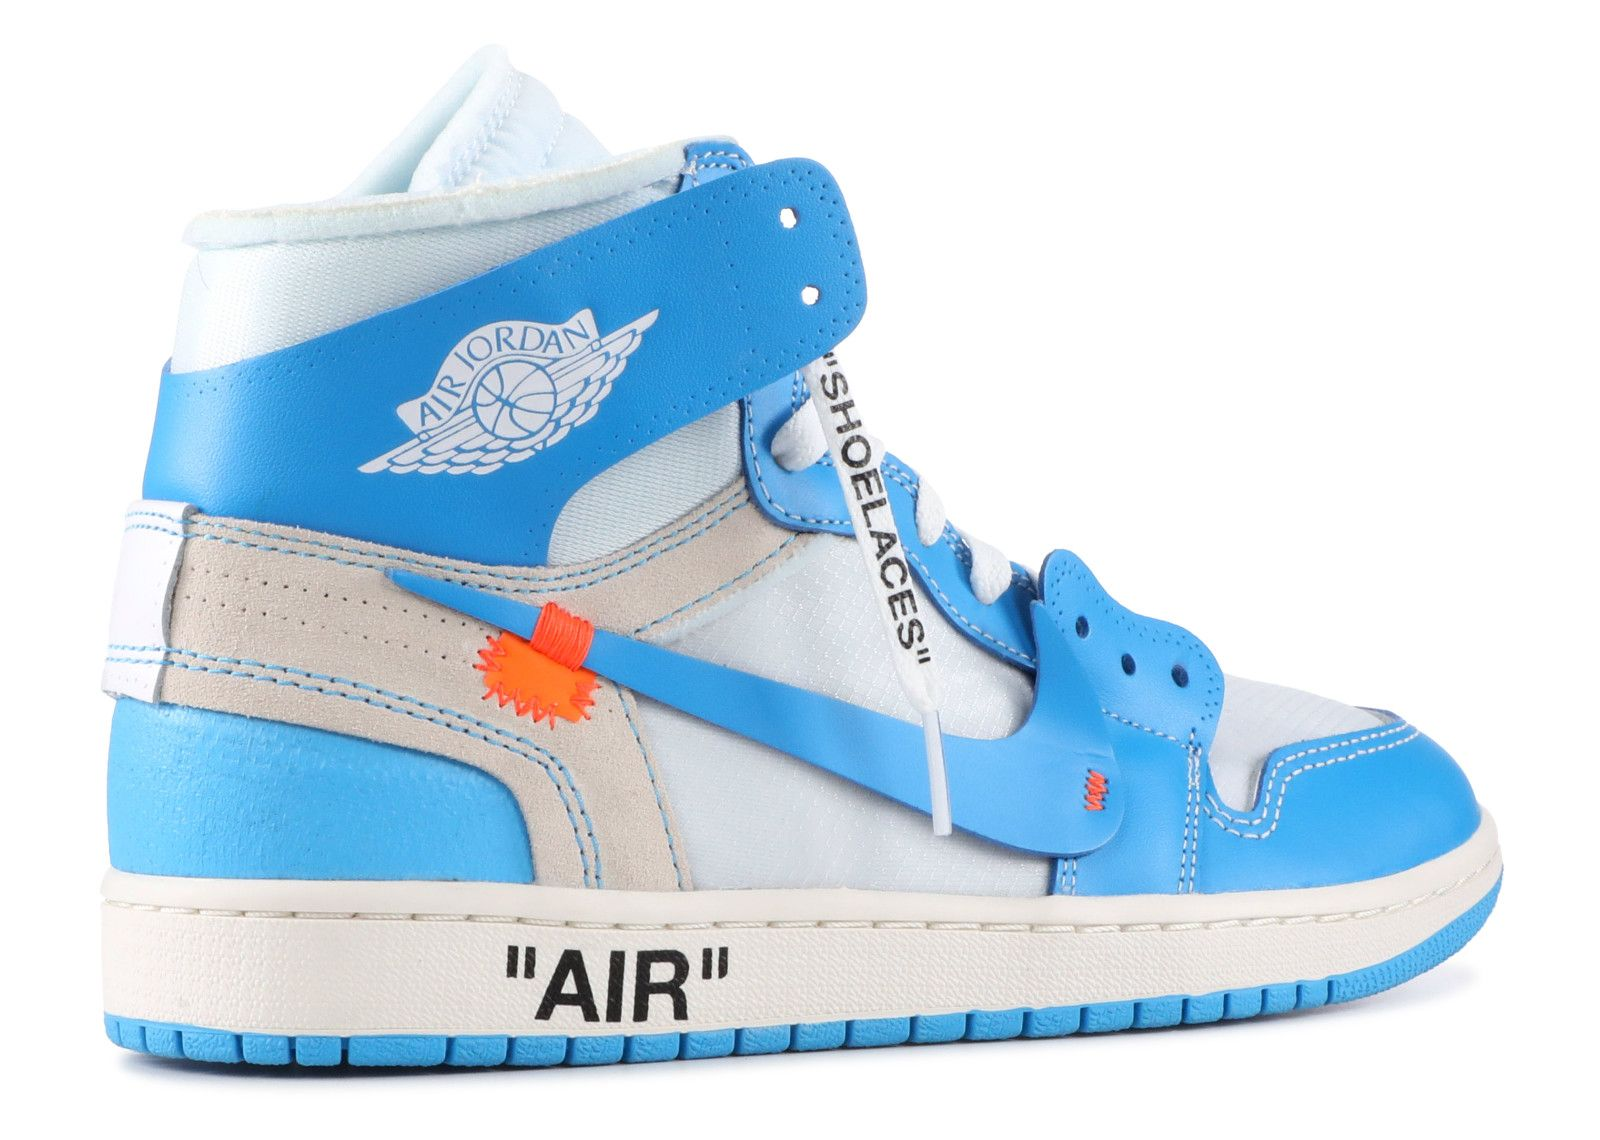 Jordan 1 Retro High Off White Off White Unc Air Jordans